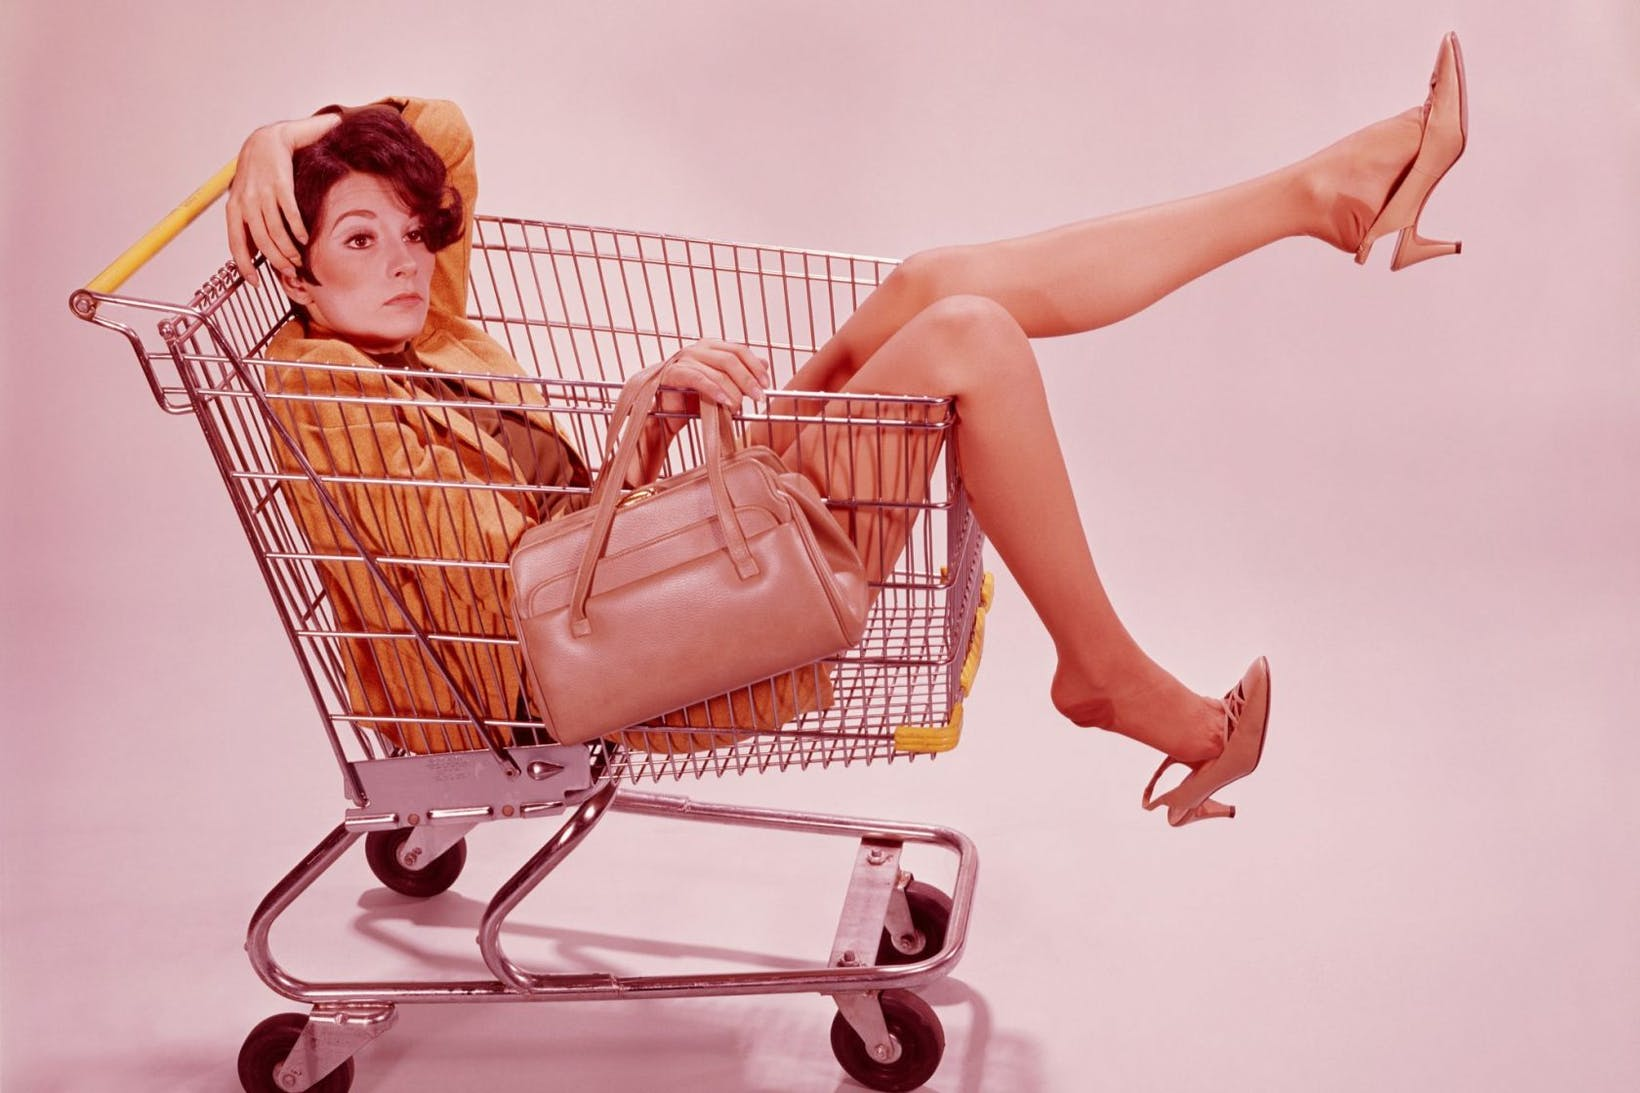 auburn haired woman from 1960s with shades of brown suit and beige purse, which is delicately draped over the edge of a shopping cart with banana yellow bumpers and handles, is sitting in a basket with an intense look on her face, hand dropped across her face, and one leg in the air with shoes half falling off